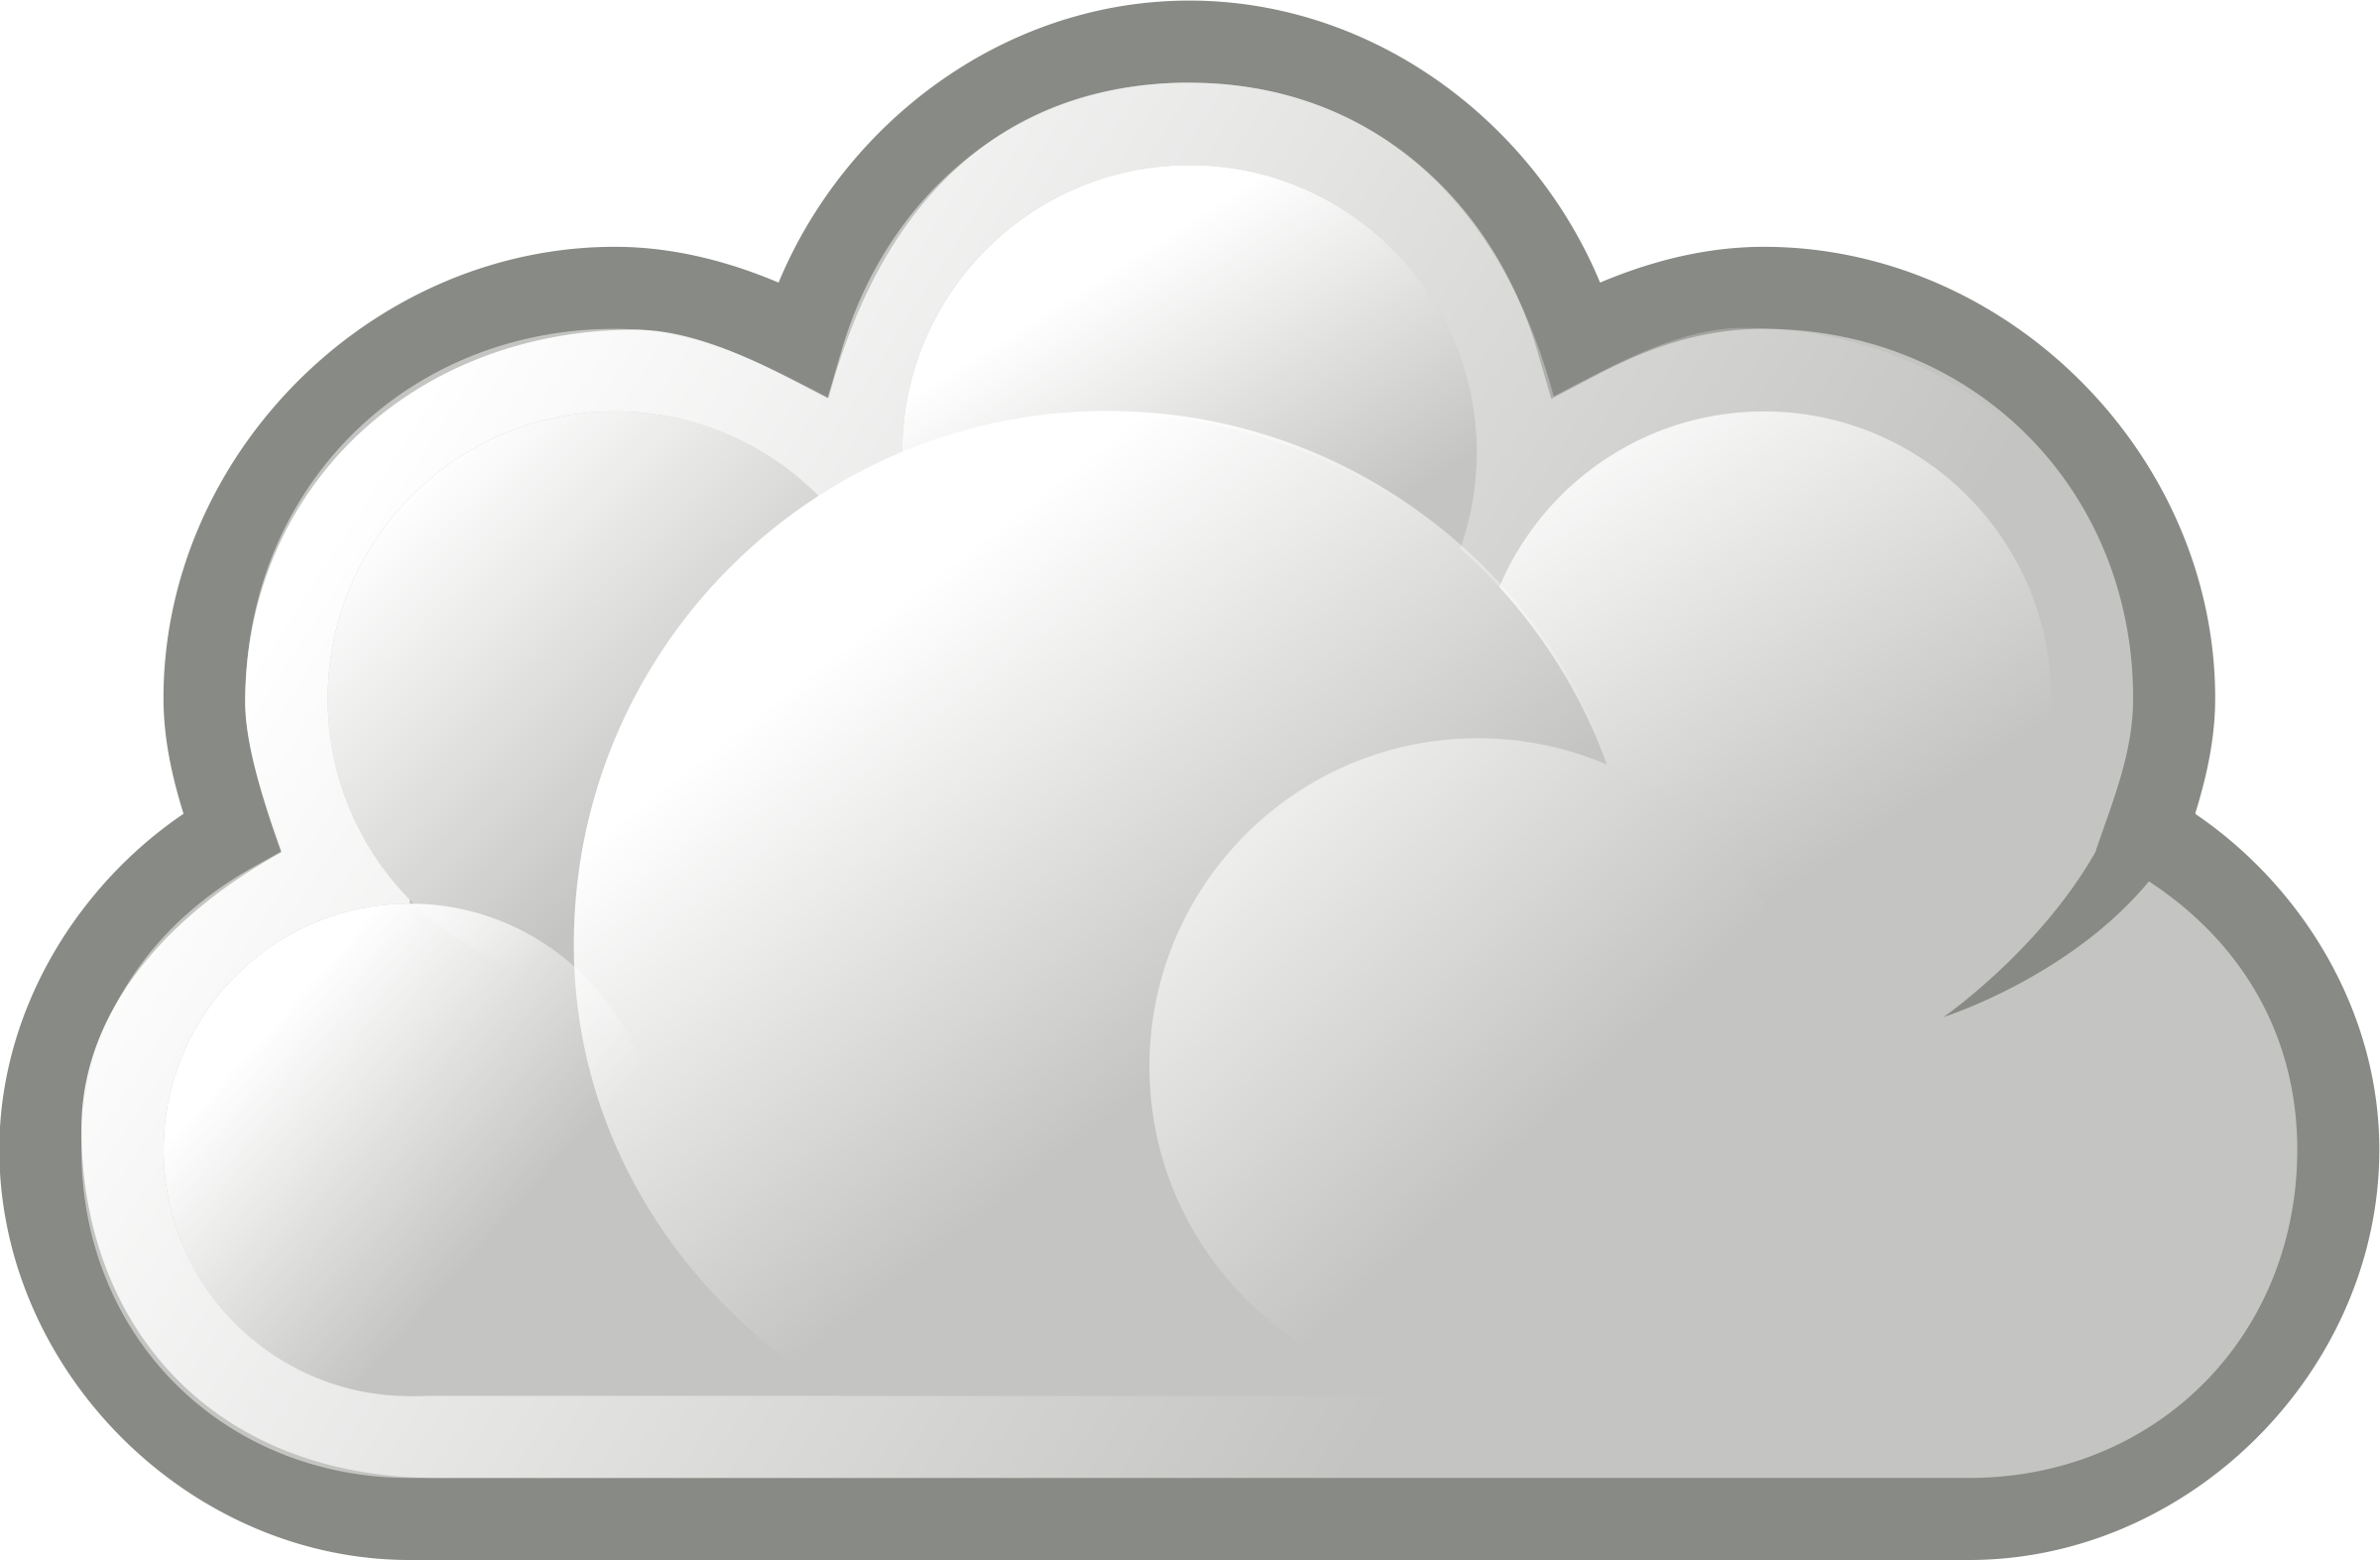 Smoke Cloud Clipart Clip art of Cloud Clipart #865 — Clipartwork.